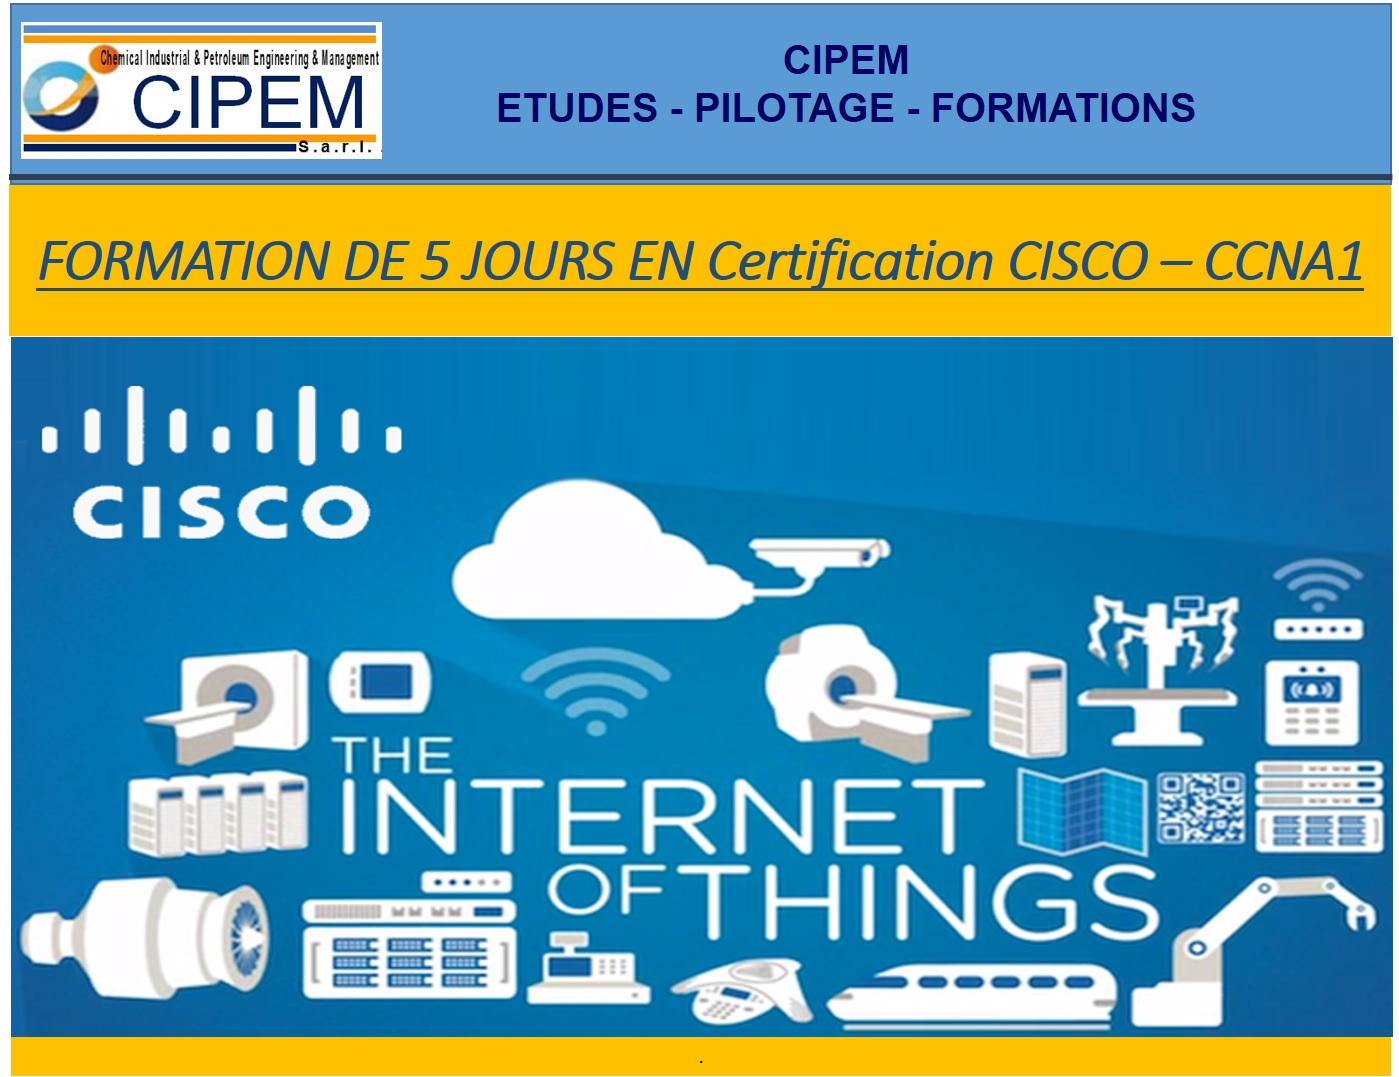 Certification CSICO – CCNA1